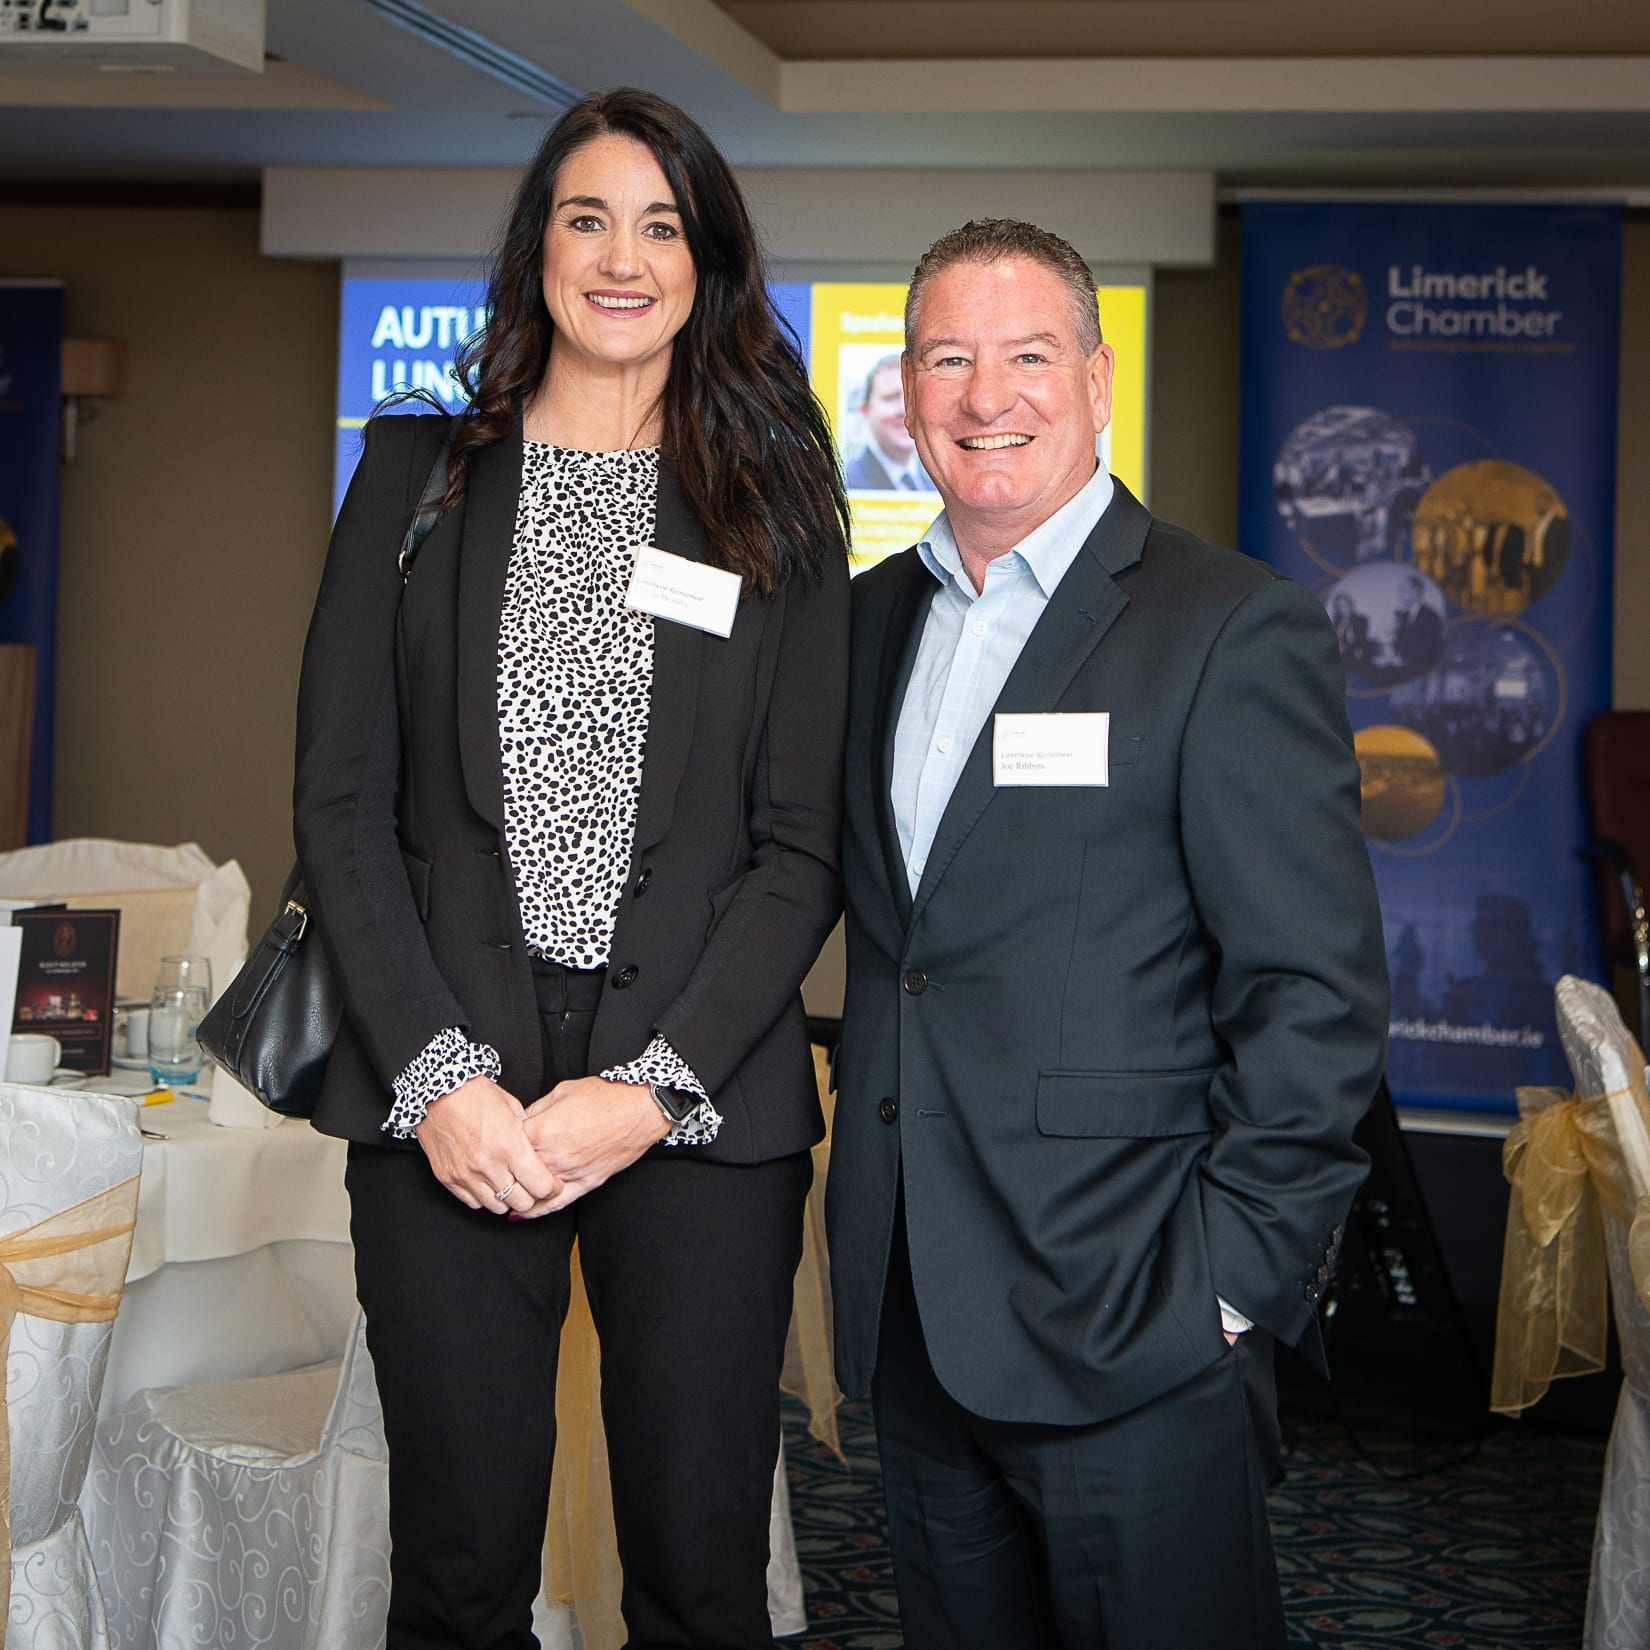 No repro fee-Limerick Chamber Autumn Luncheon which was held in The Savoy Hotel on Monday 23rd September - From Left to Right: Gillian Dunphy and Joe Robbins both from Career Wise Recruitment.  Photo credit Shauna Kennedy